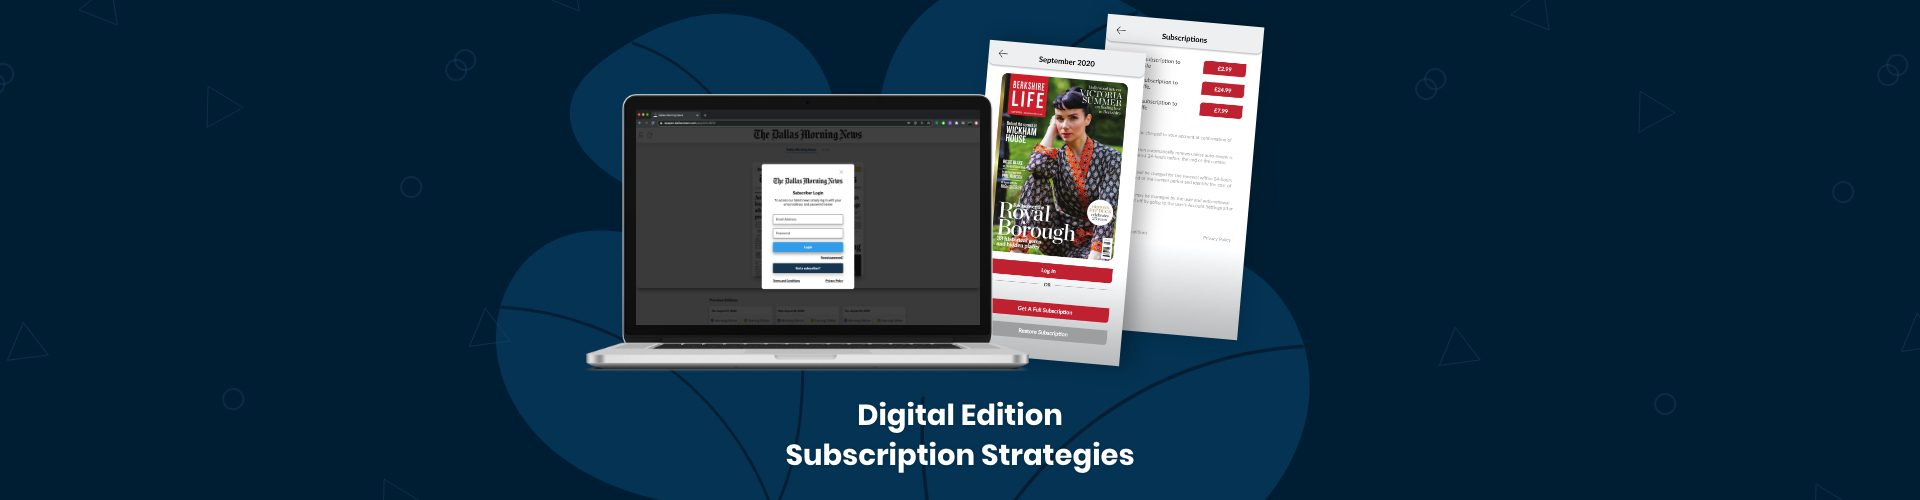 Digital Edition Subscription Strategies